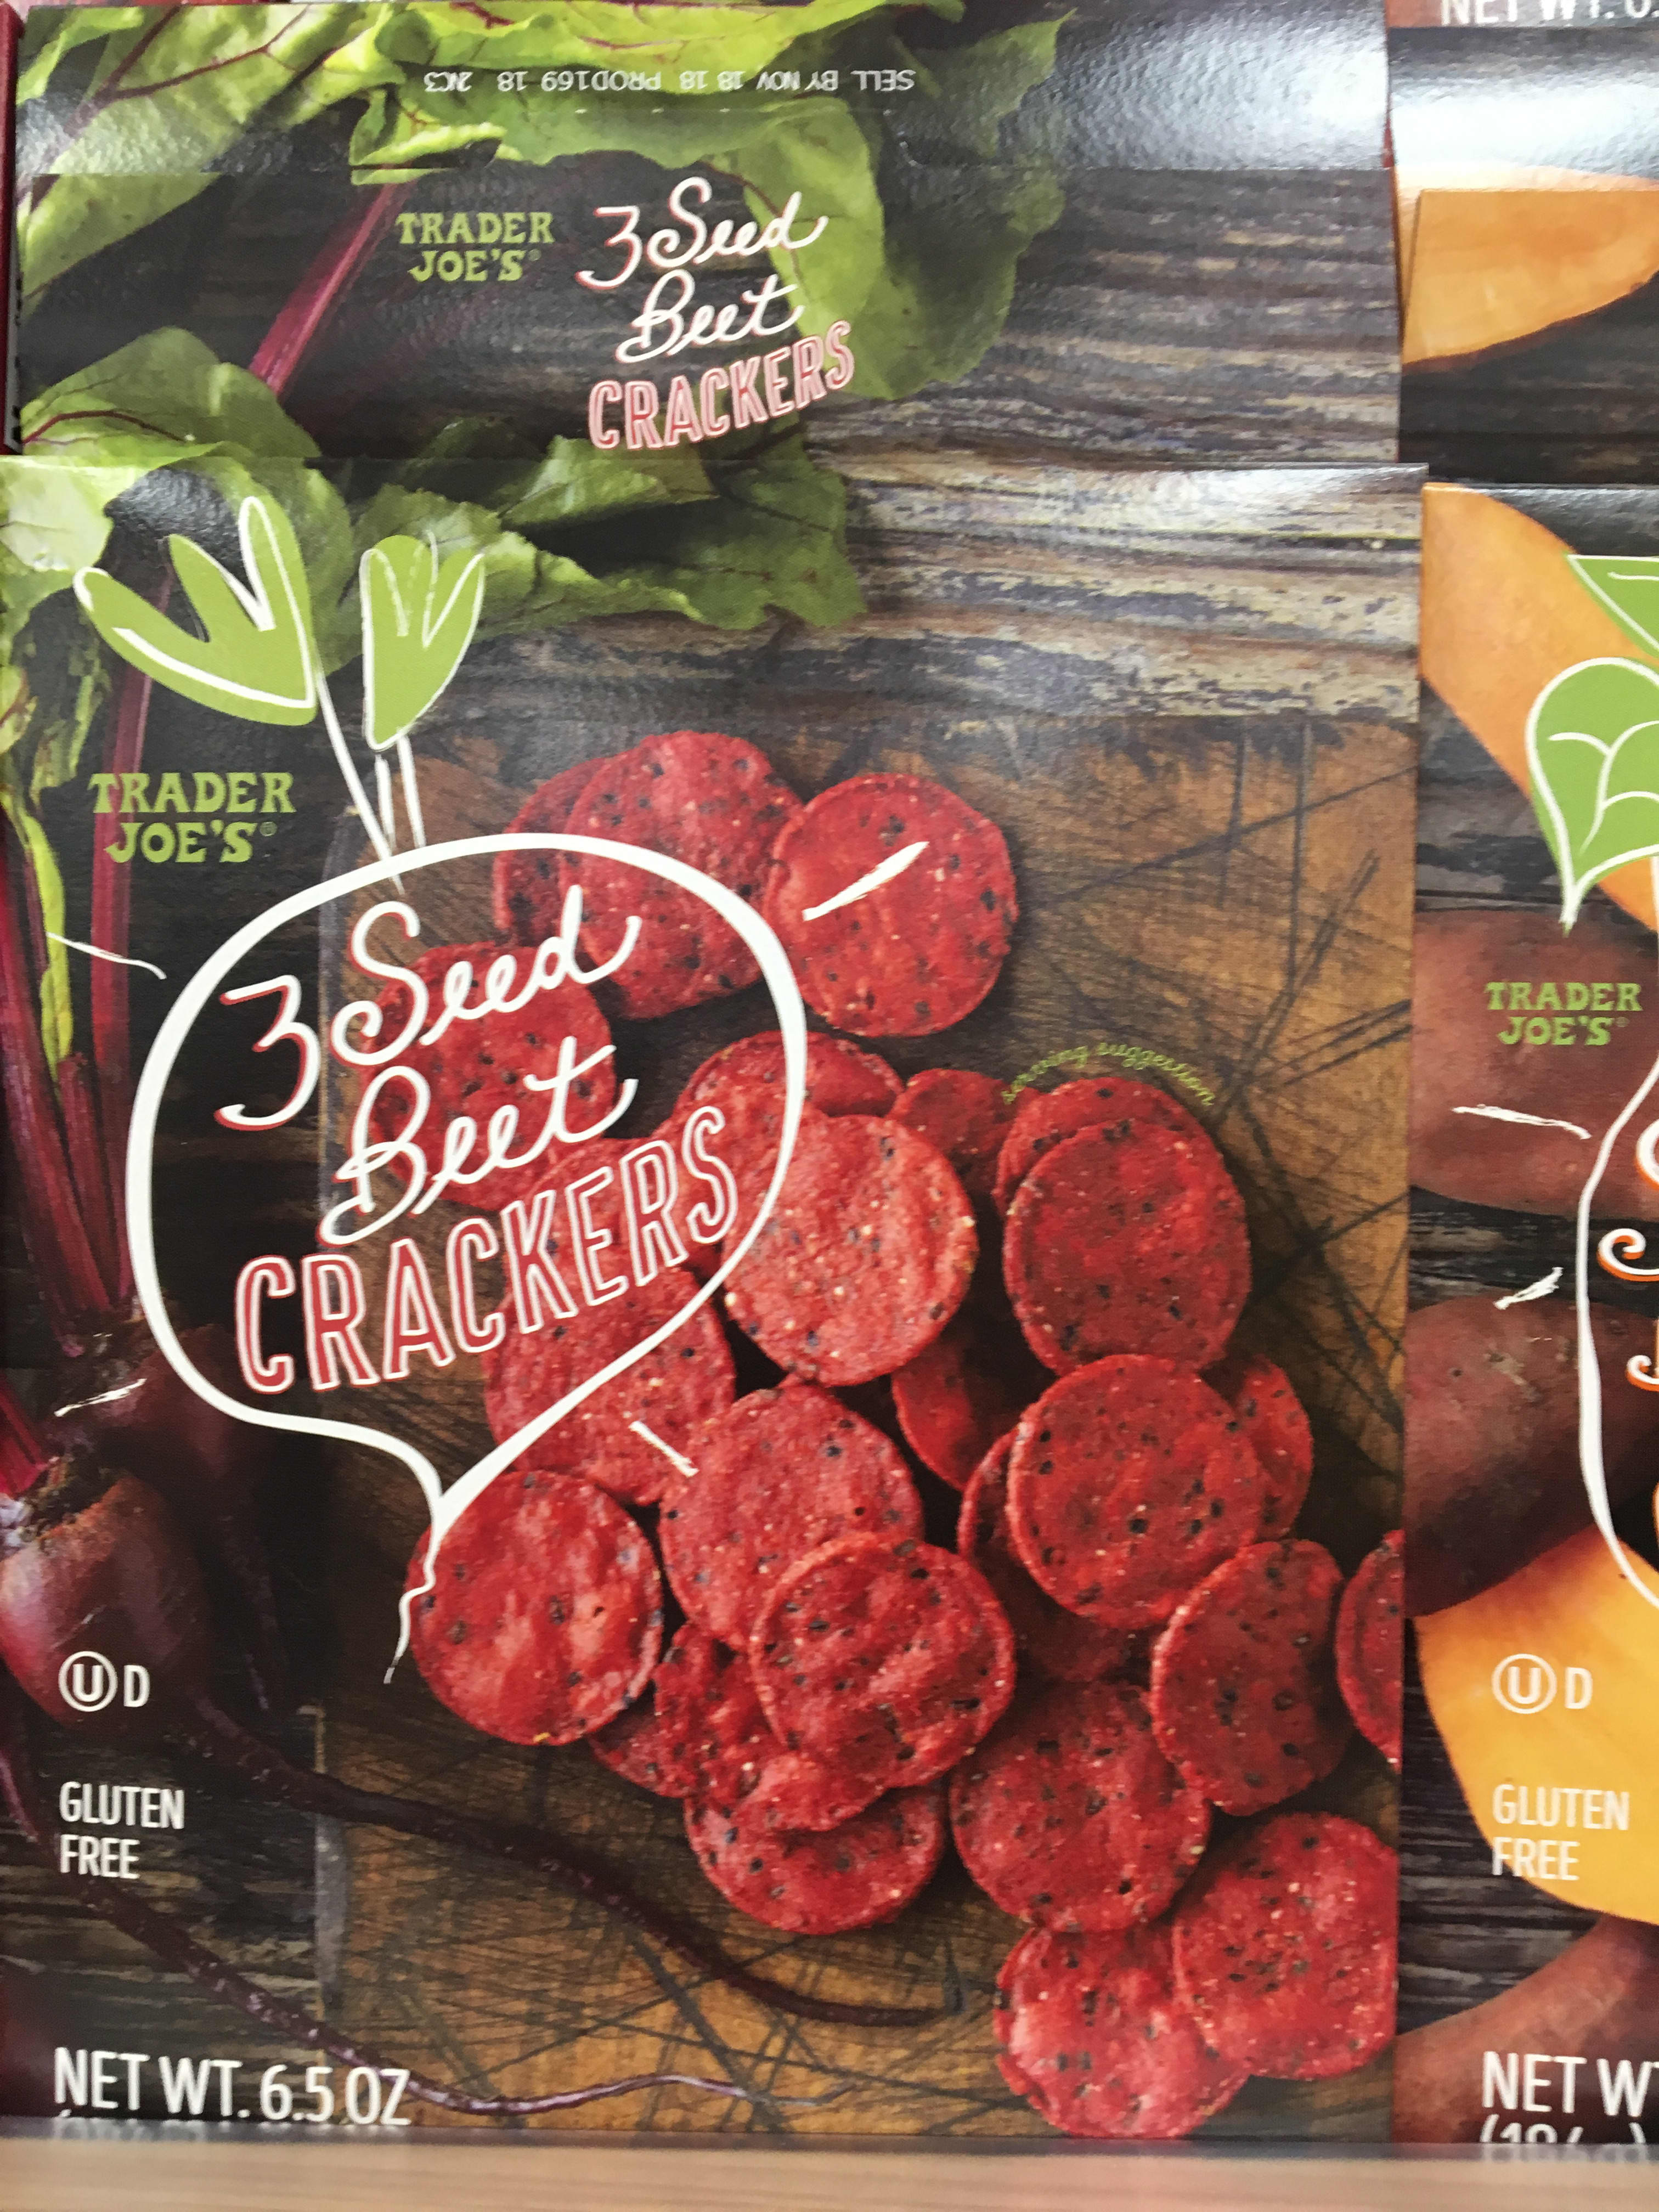 15 Lunch Box Snacks You Should Add to Your Trader Joe's Shopping List: gallery image 1